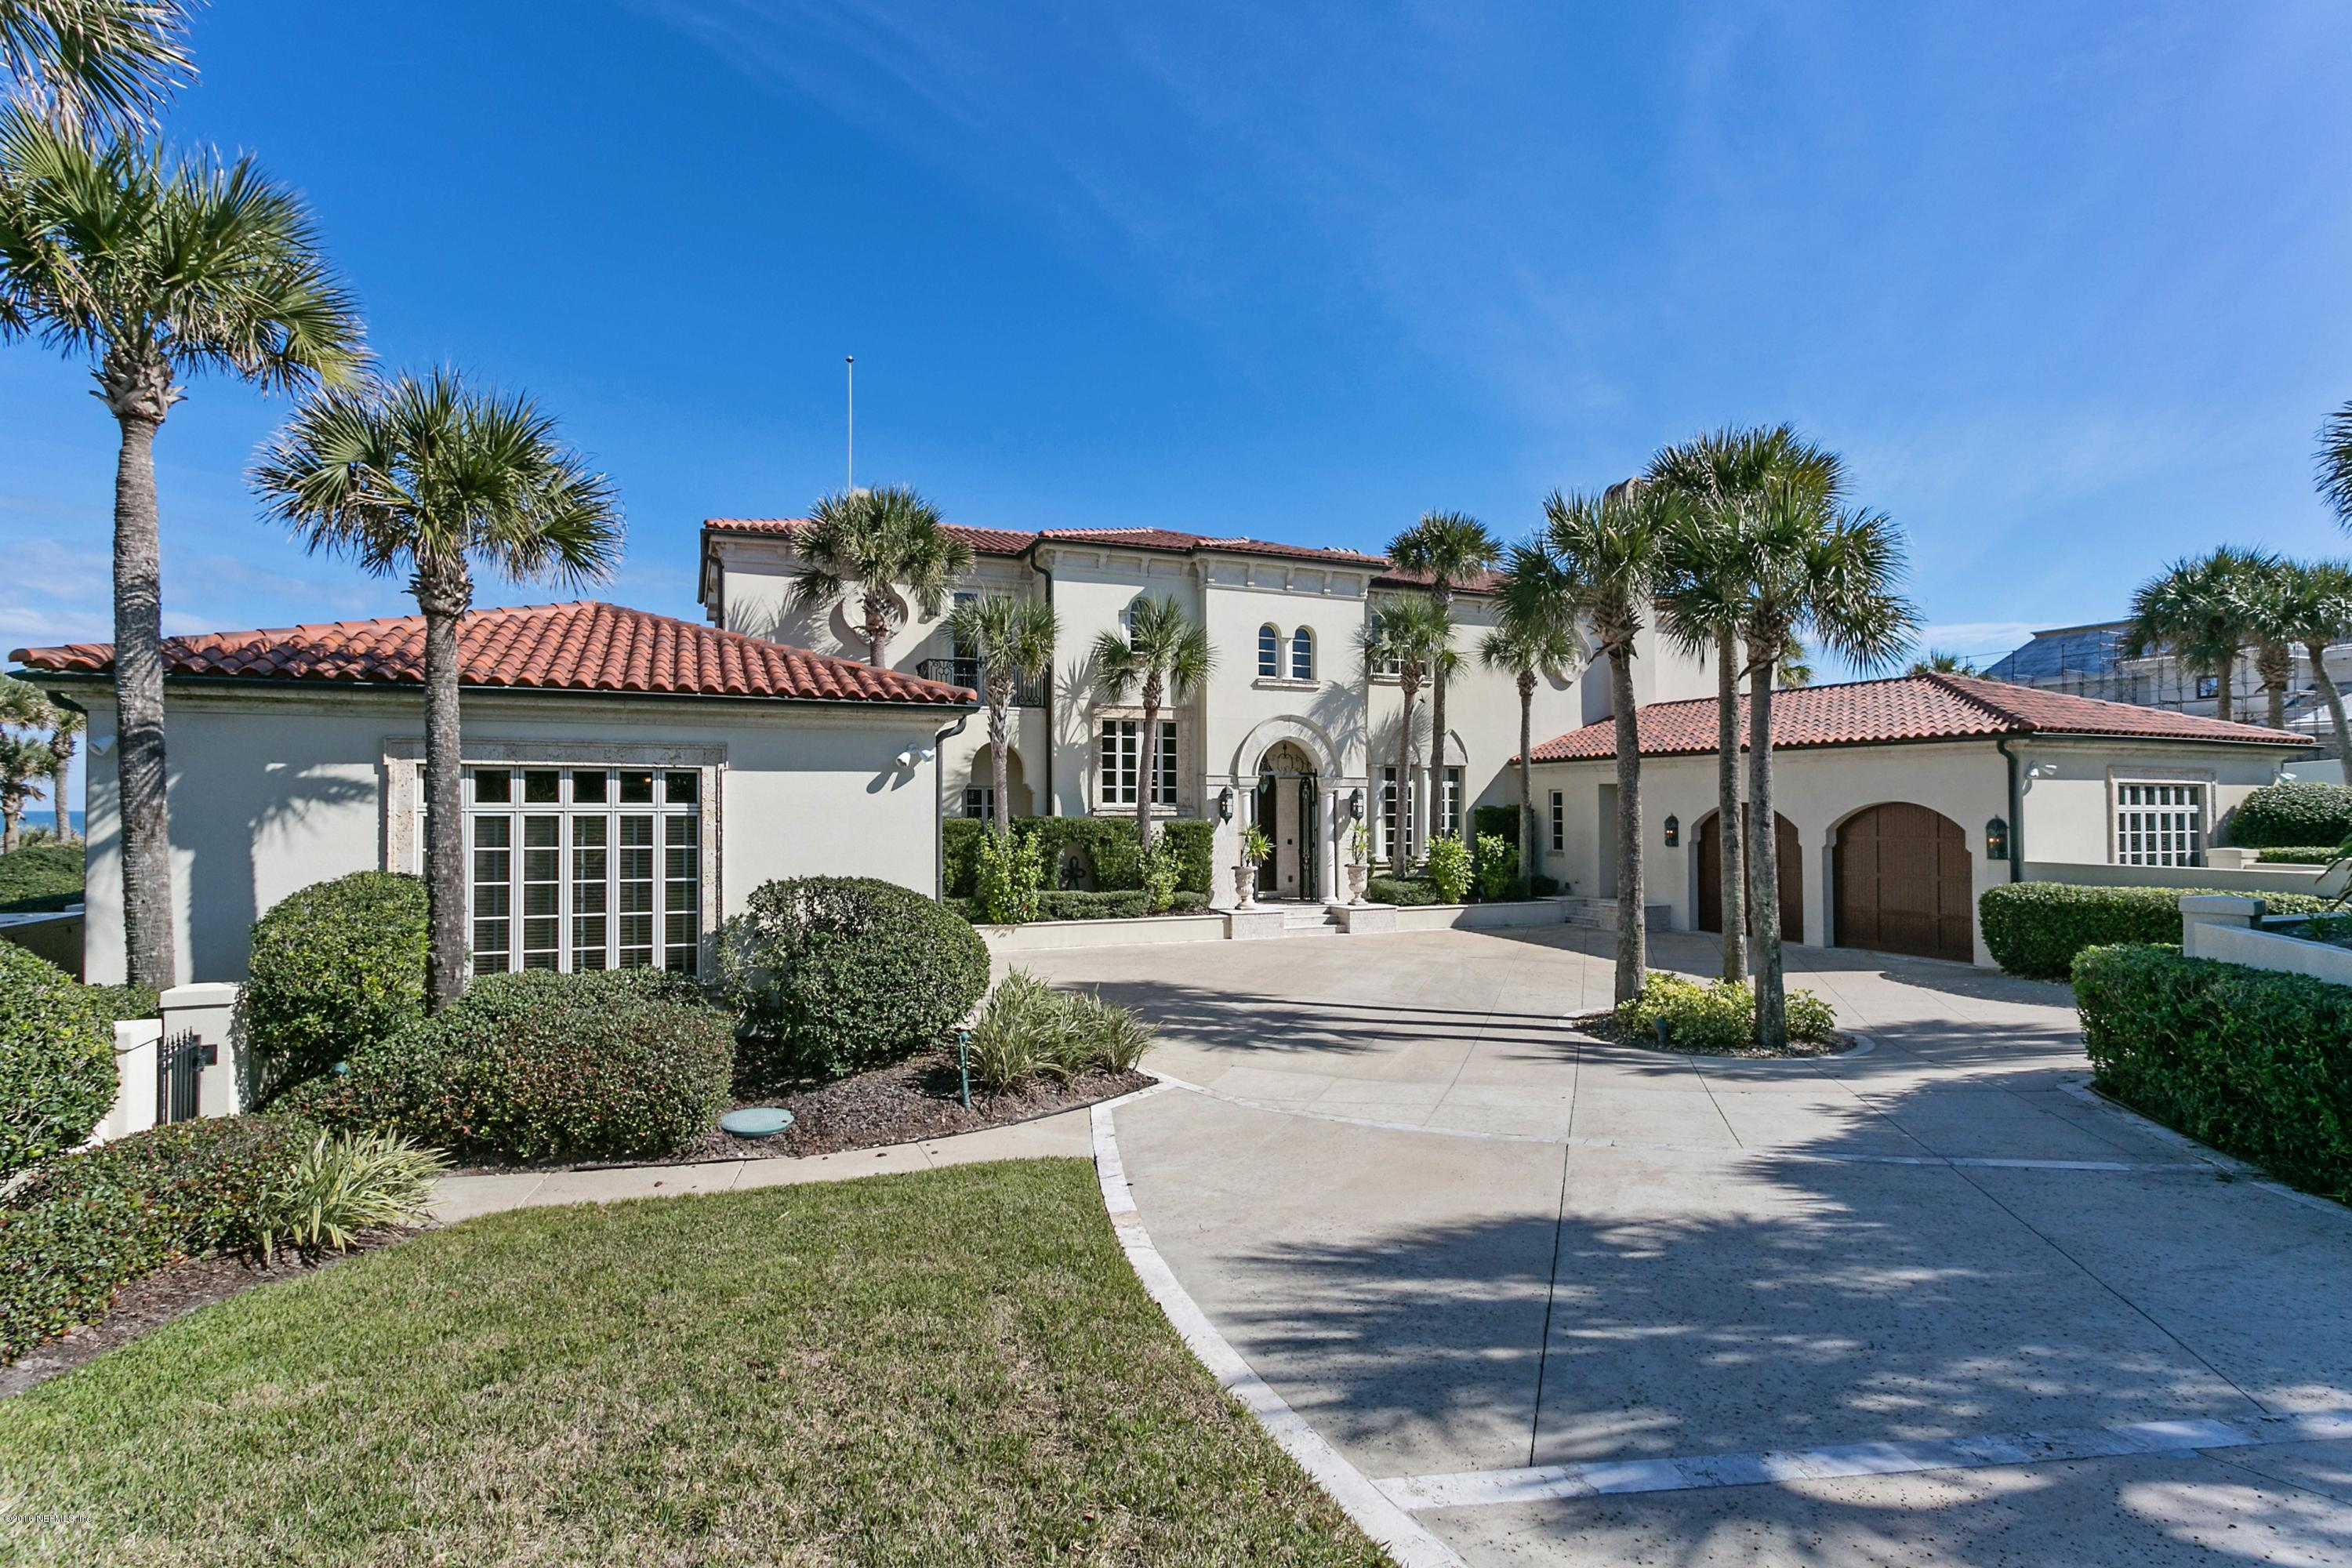 1205  PONTE VEDRA BLVD, one of homes for sale in Ponte Vedra